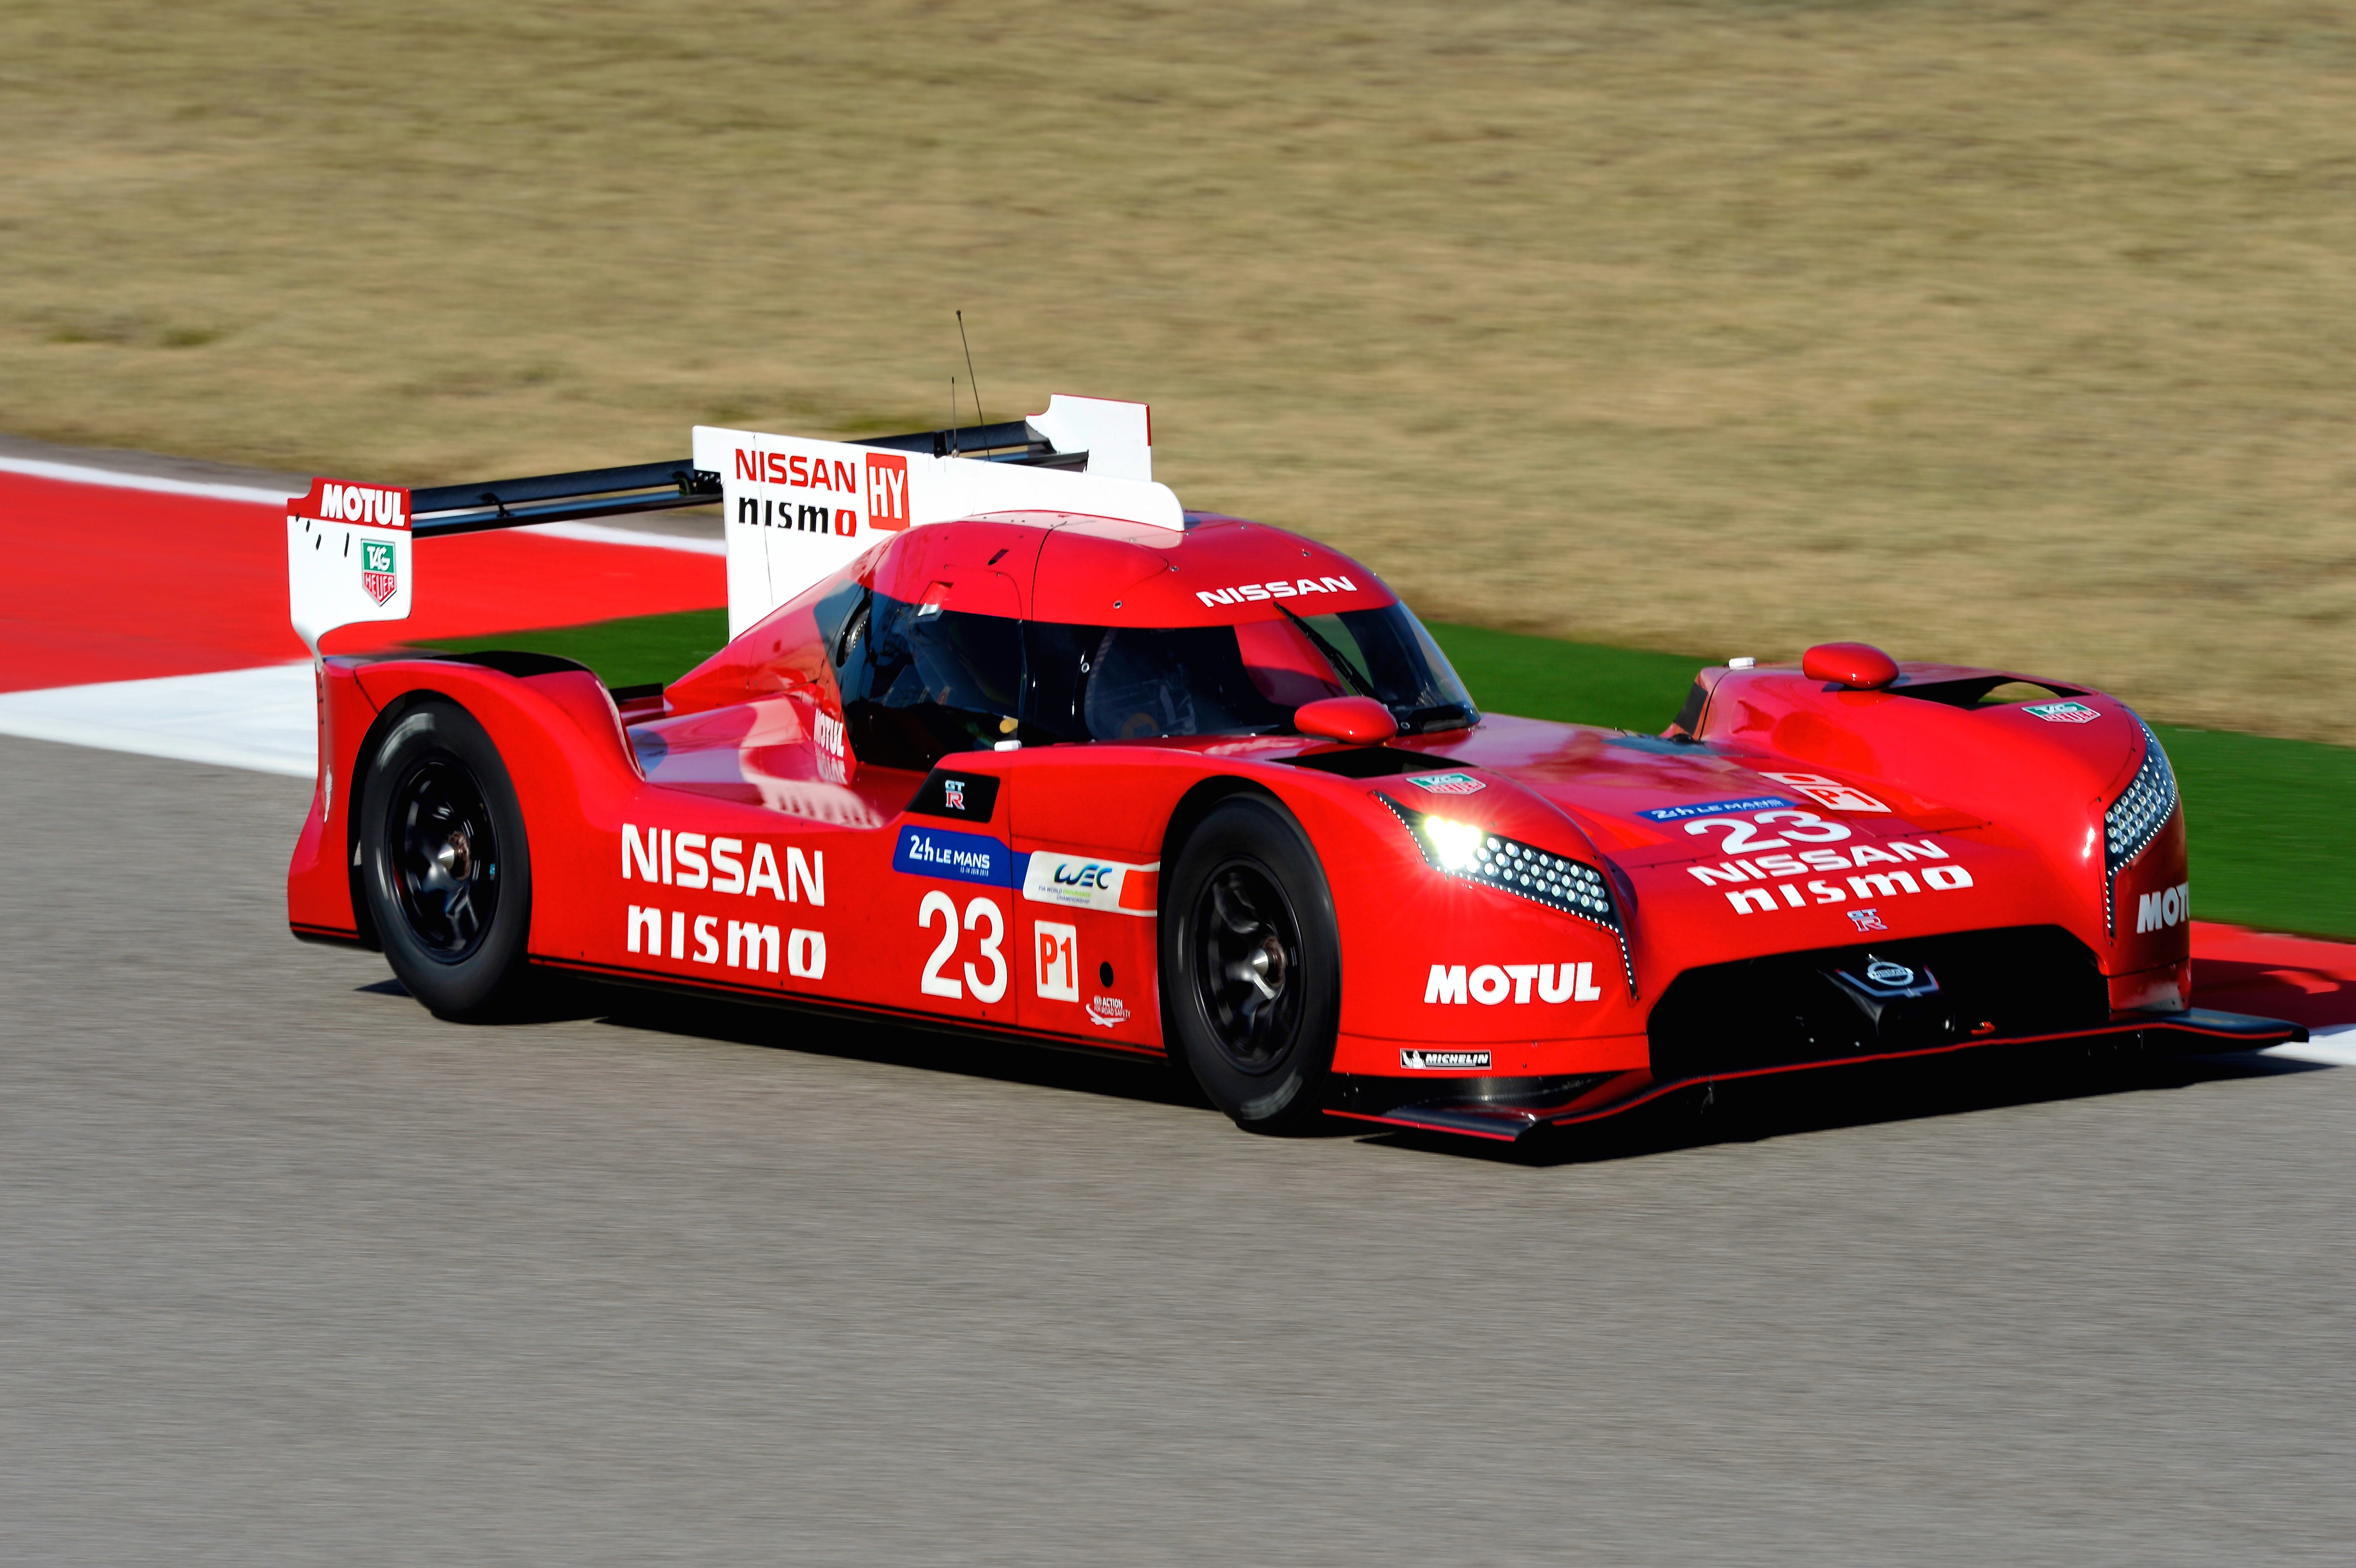 Nissan >> Nissan GT-R LM Nismo: front-wheel drive LMP1 hybrid Paul Tan - Image 308517